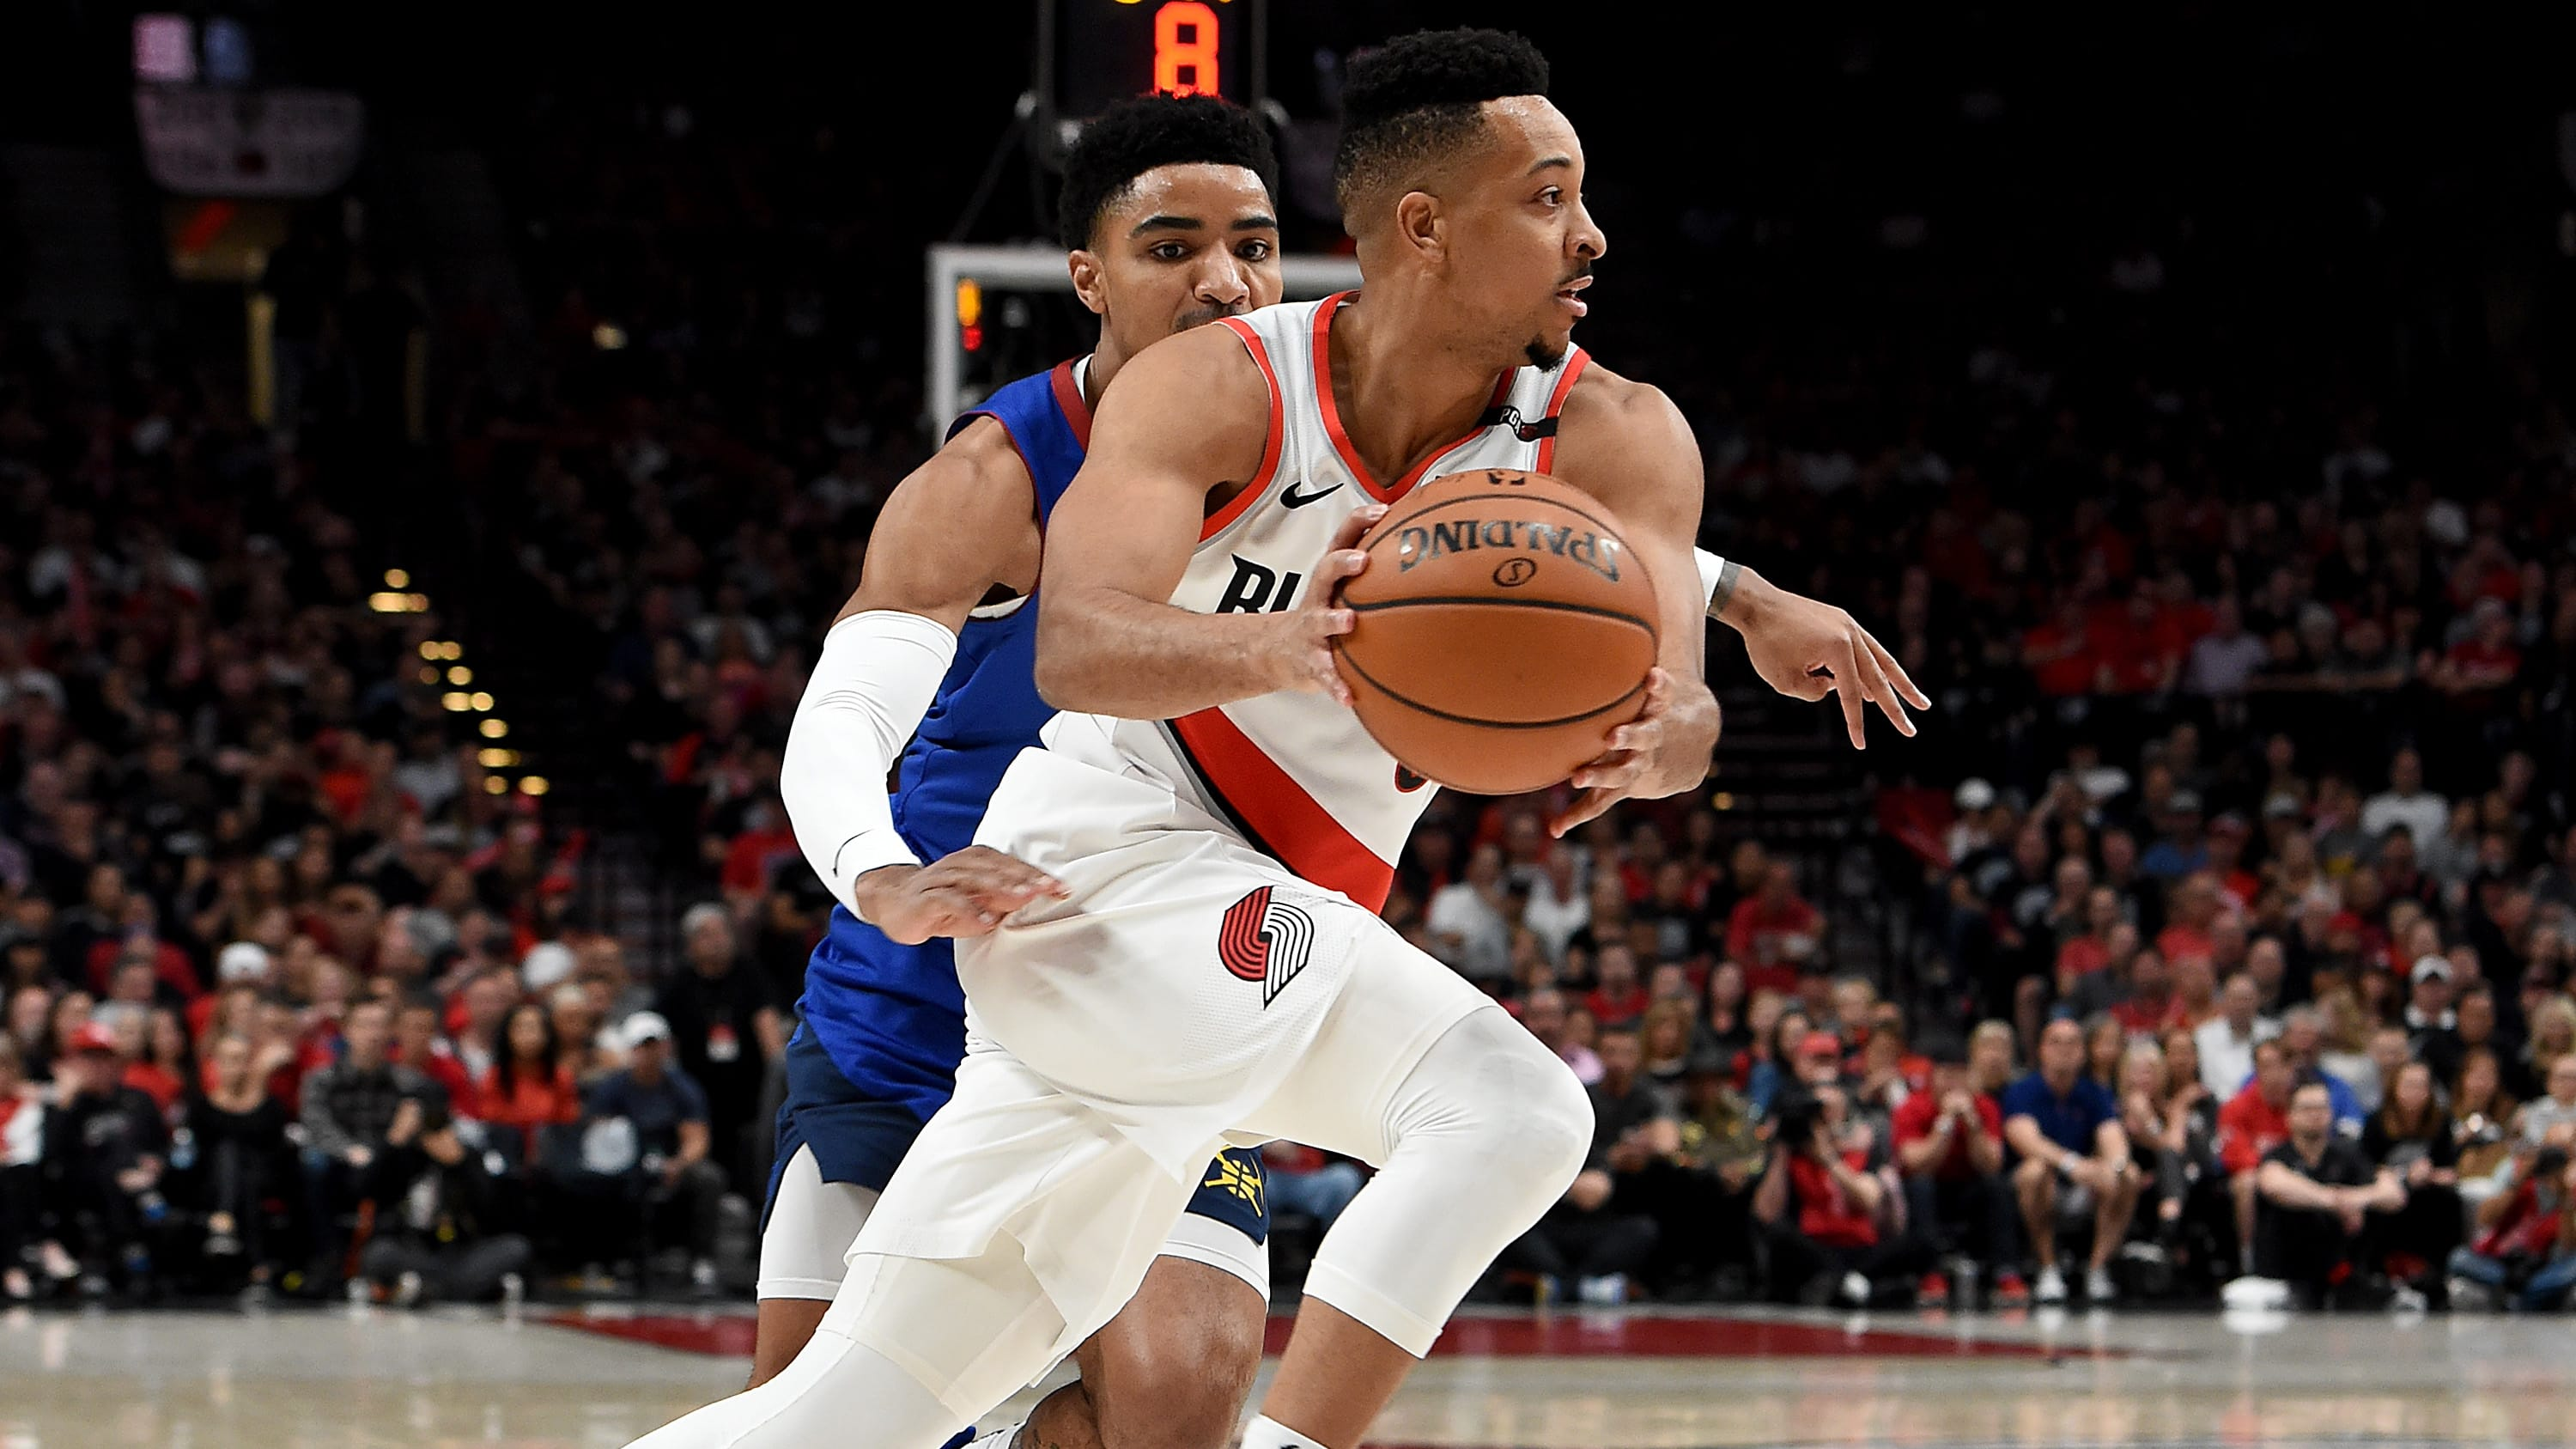 PORTLAND, OREGON - MAY 09: CJ McCollum #3 of the Portland Trail Blazers drives to the basket past Gary Harris #14 of the Denver Nuggets during the second half of Game Six of the Western Conference Semifinals at Moda Center on May 09, 2019 in Portland, Oregon. The Blazers won 119-108. NOTE TO USER: User expressly acknowledges and agrees that, by downloading and or using this photograph, User is consenting to the terms and conditions of the Getty Images License Agreement. (Photo by Steve Dykes/Getty Images)